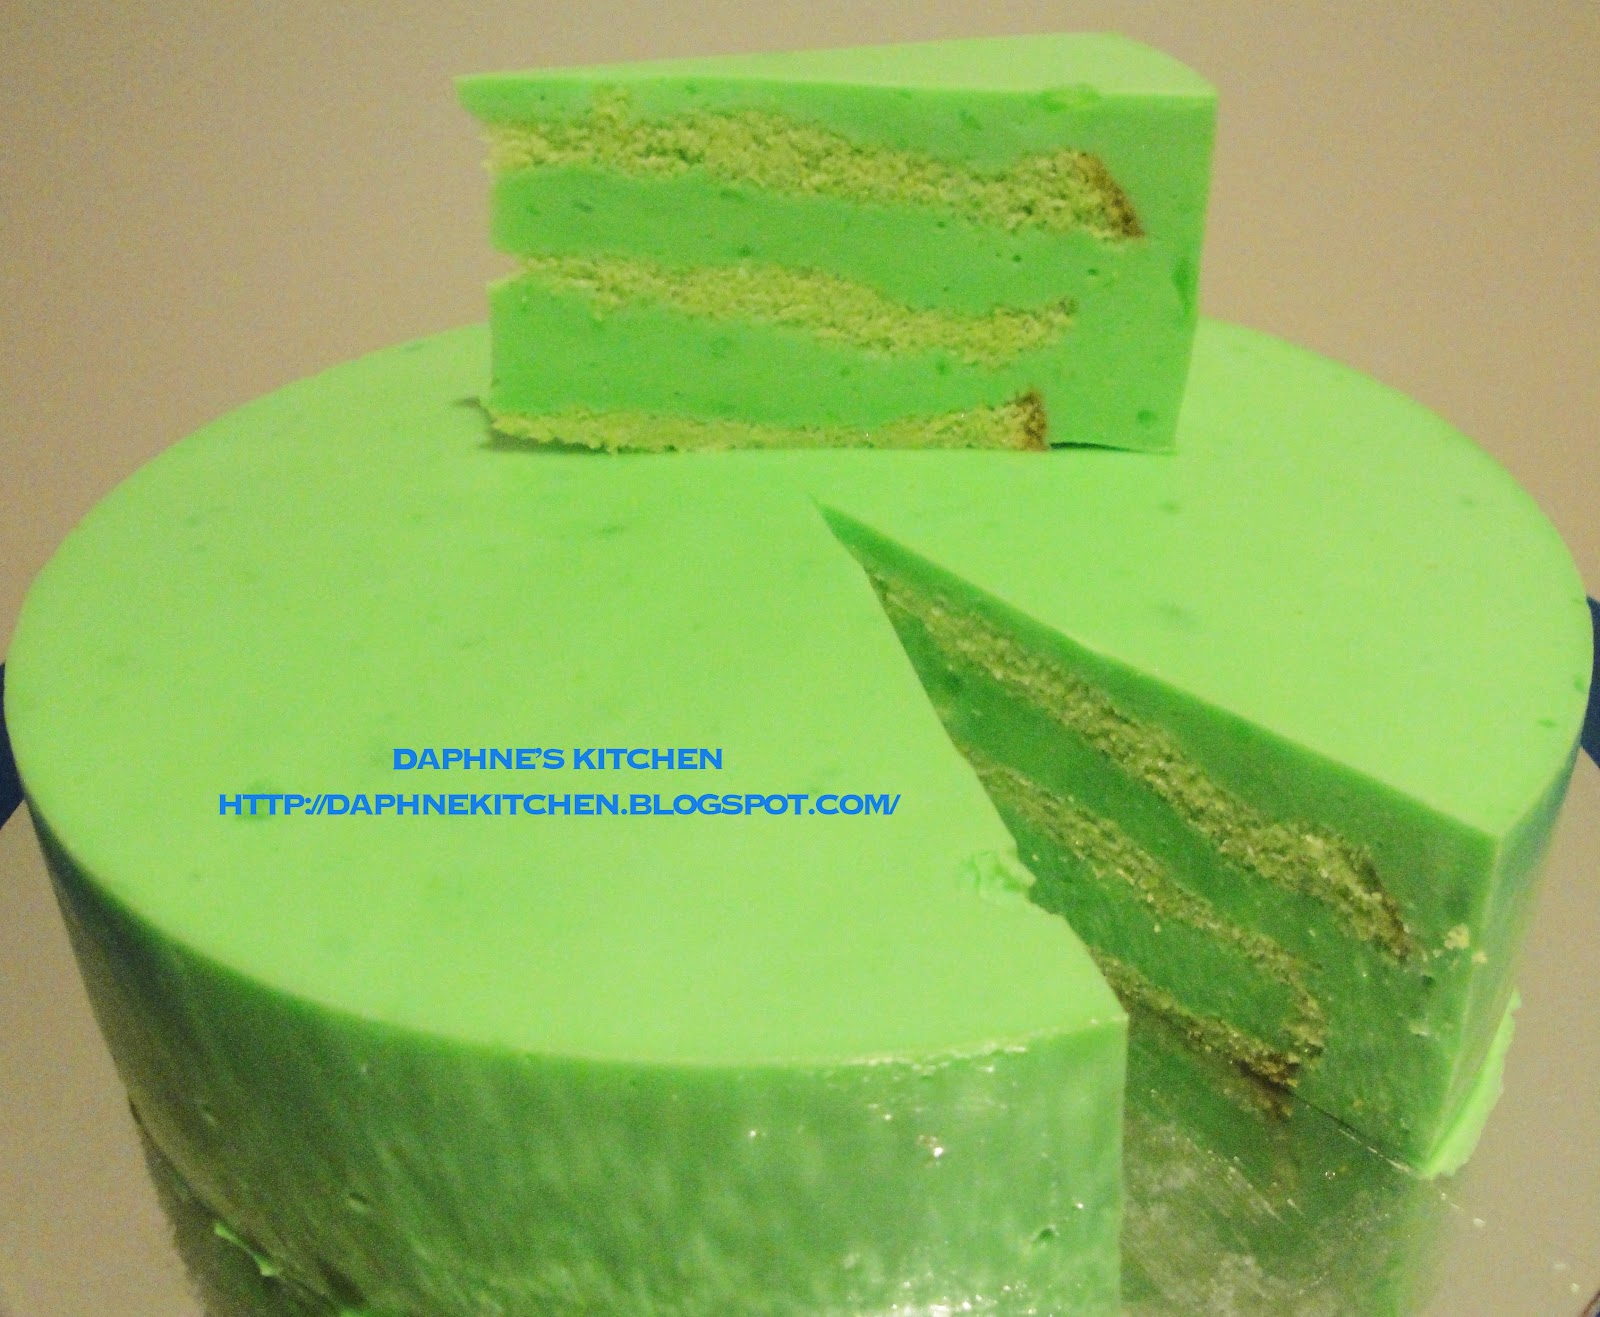 Daphne's Kitchen: Pandan Layer Cake With Better Recipe And